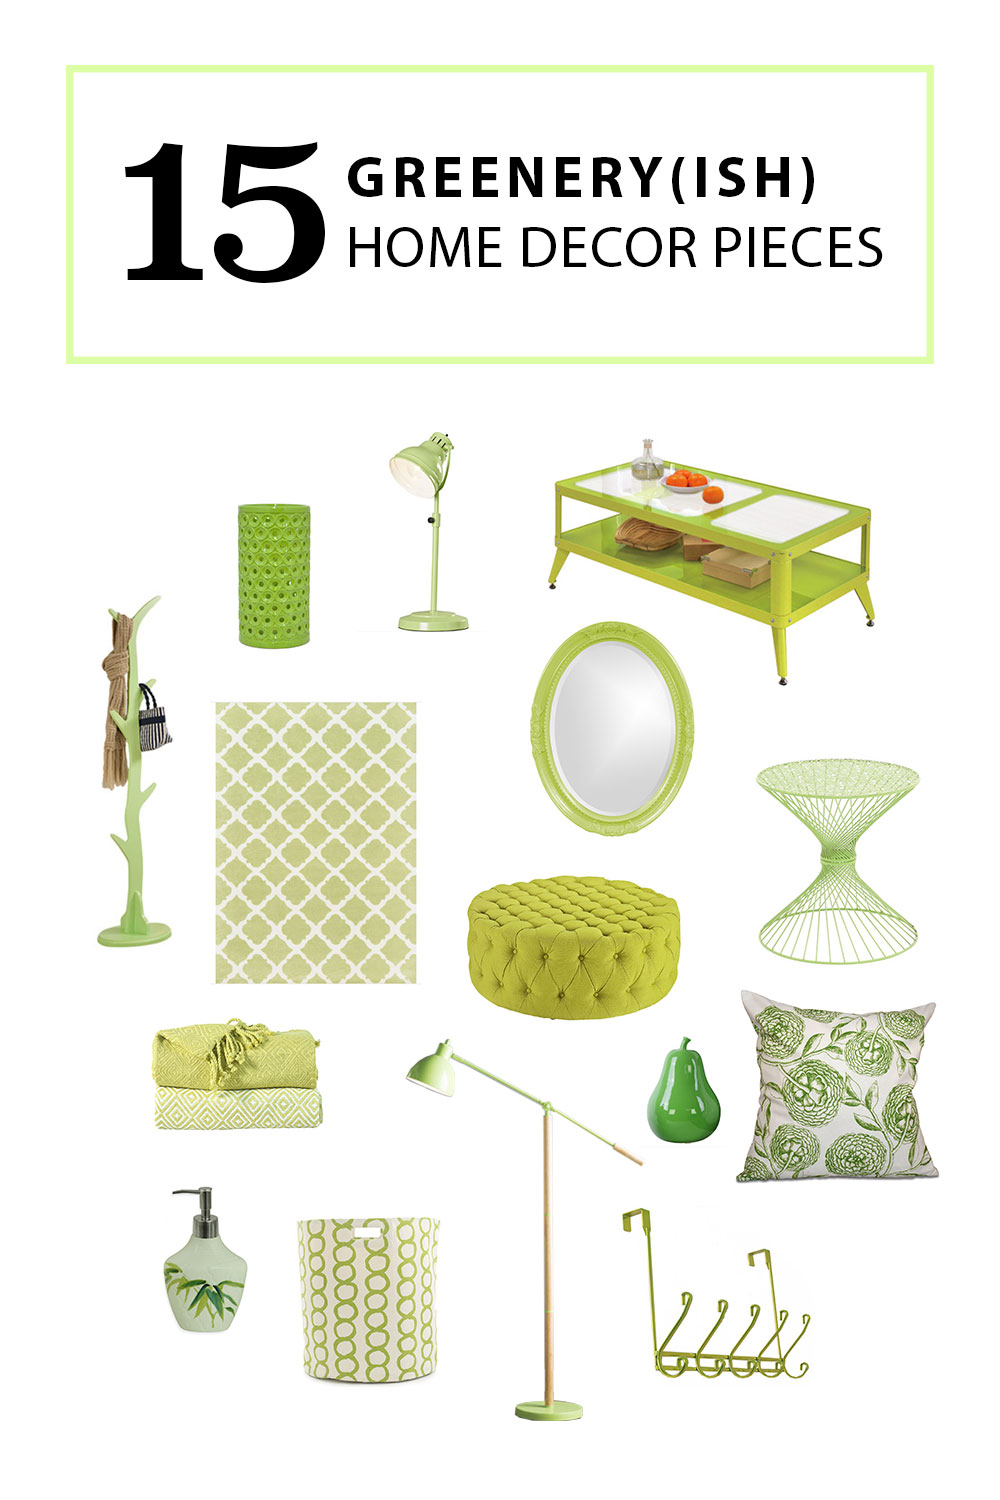 Greenery-ish Top Home Decor Picks | 2017 Pantone Colour of the Year